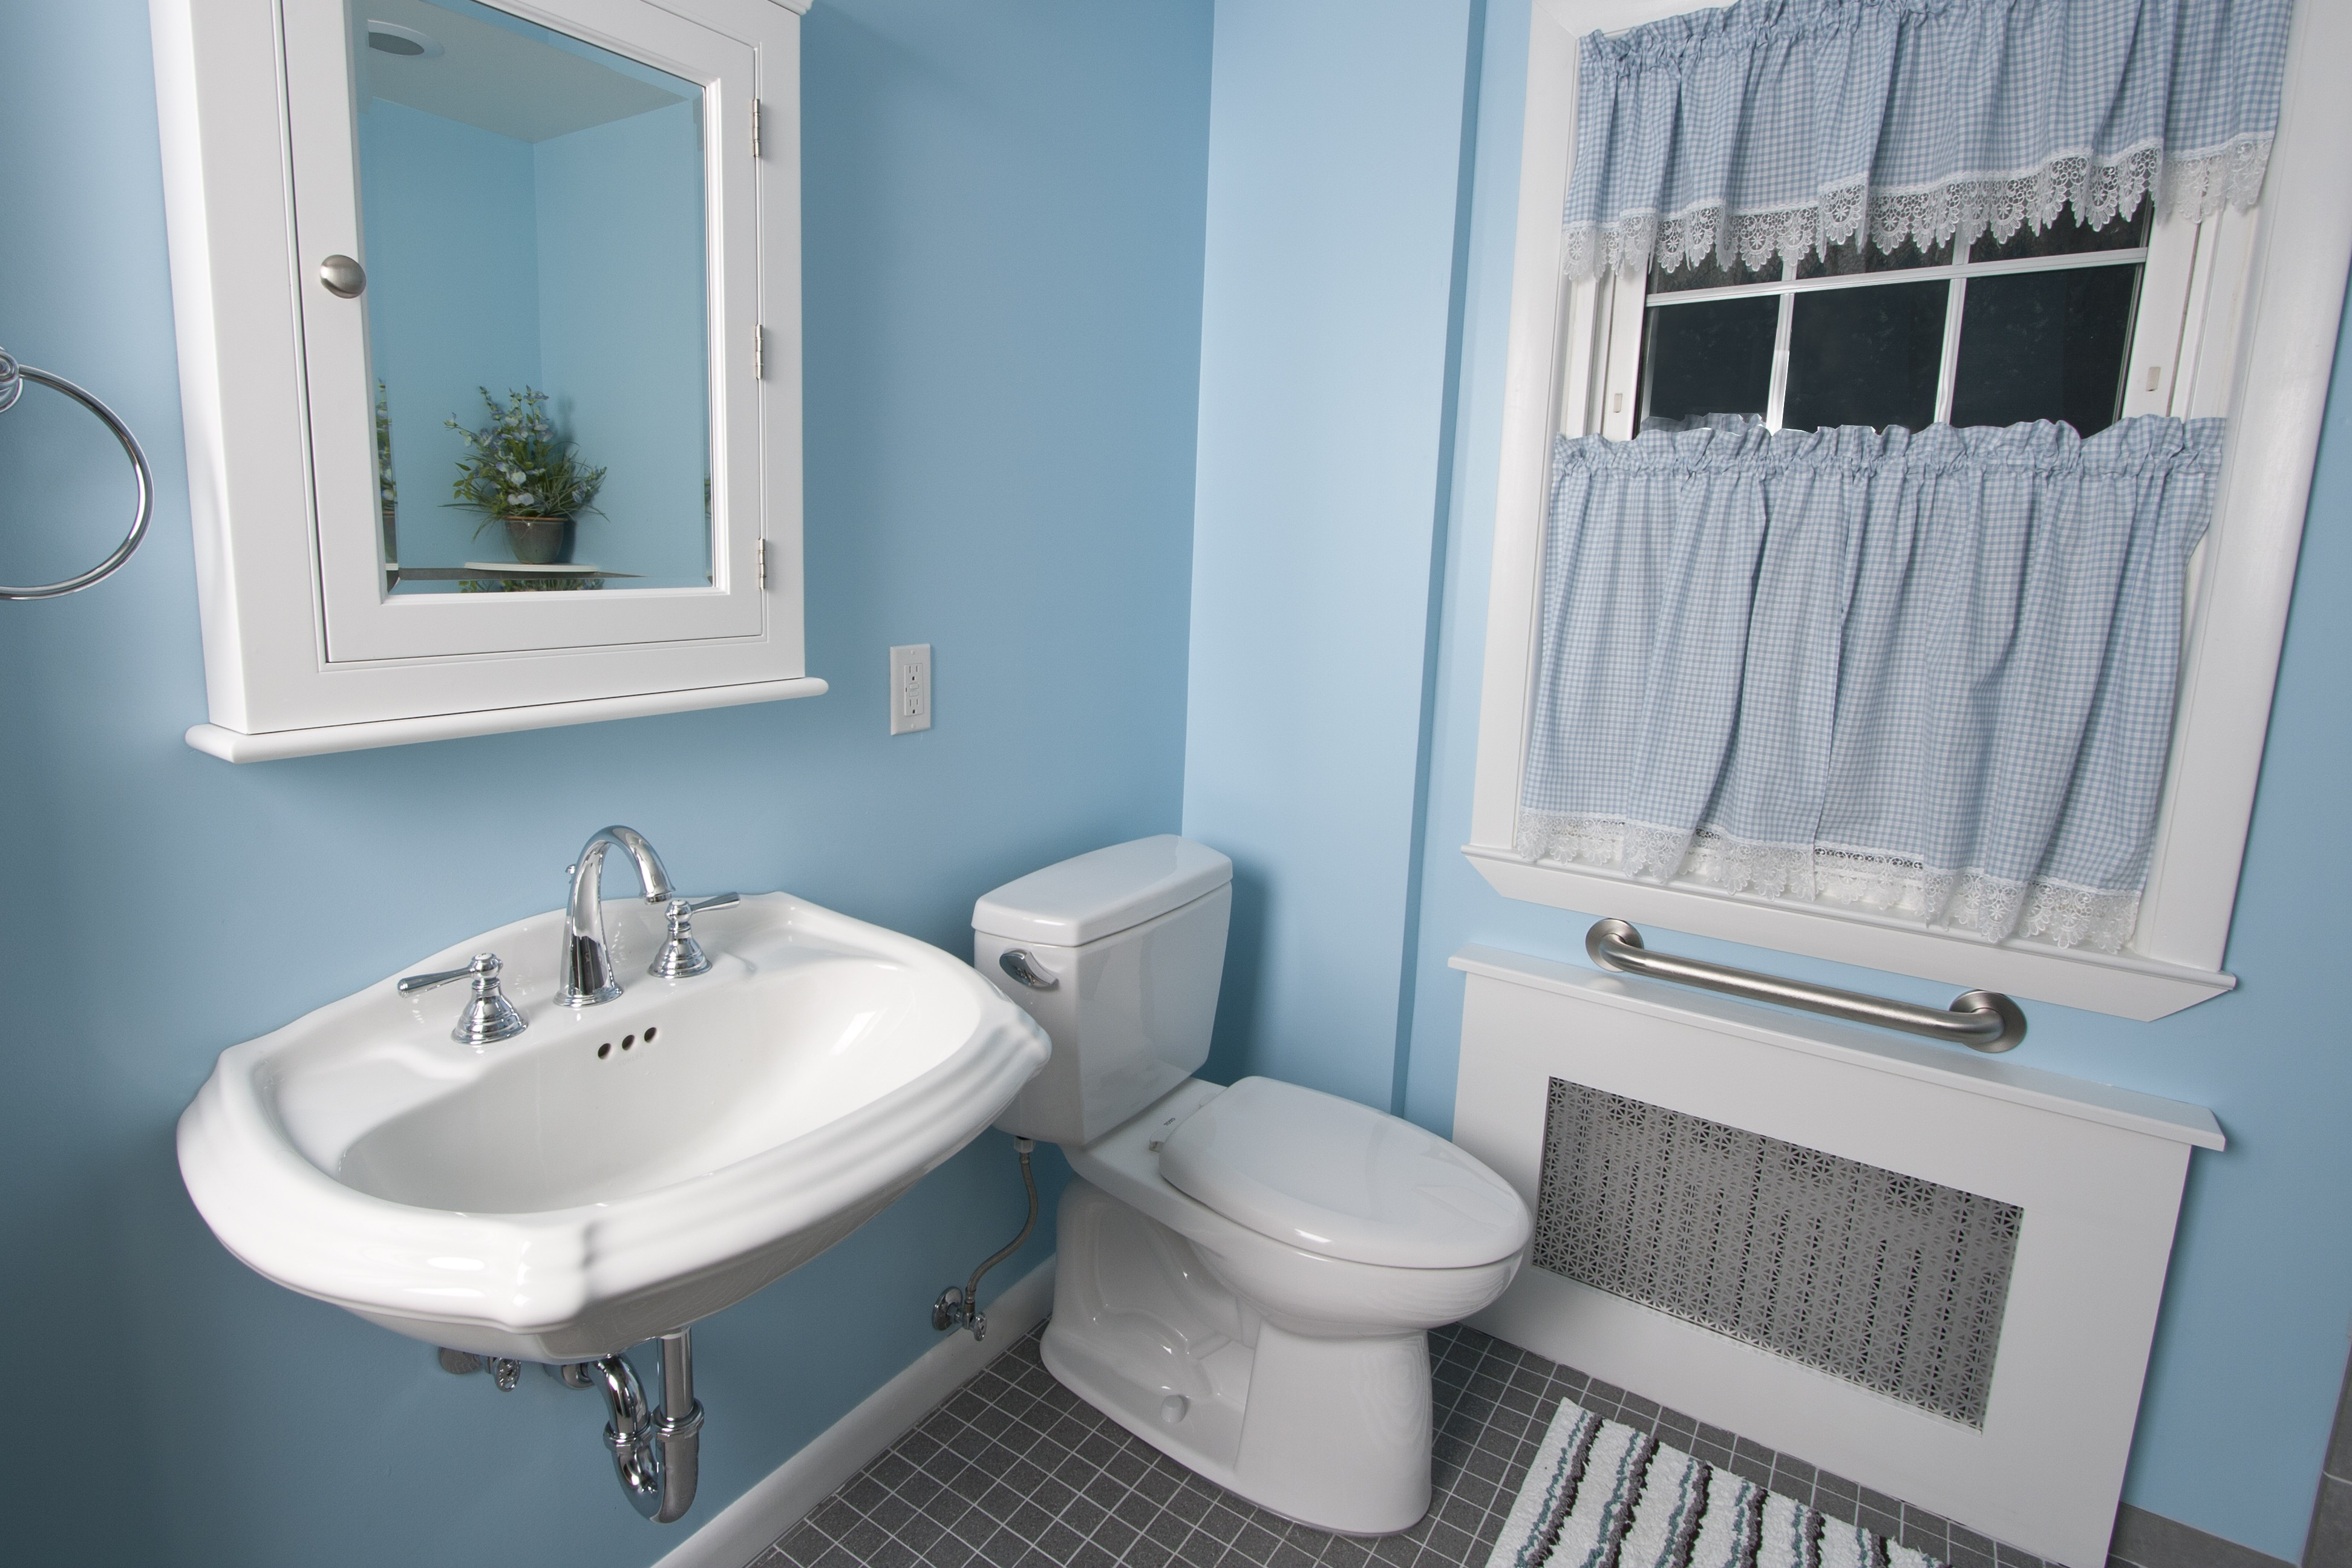 Design Build Remodeling with the Color Blue - Design Build Planners